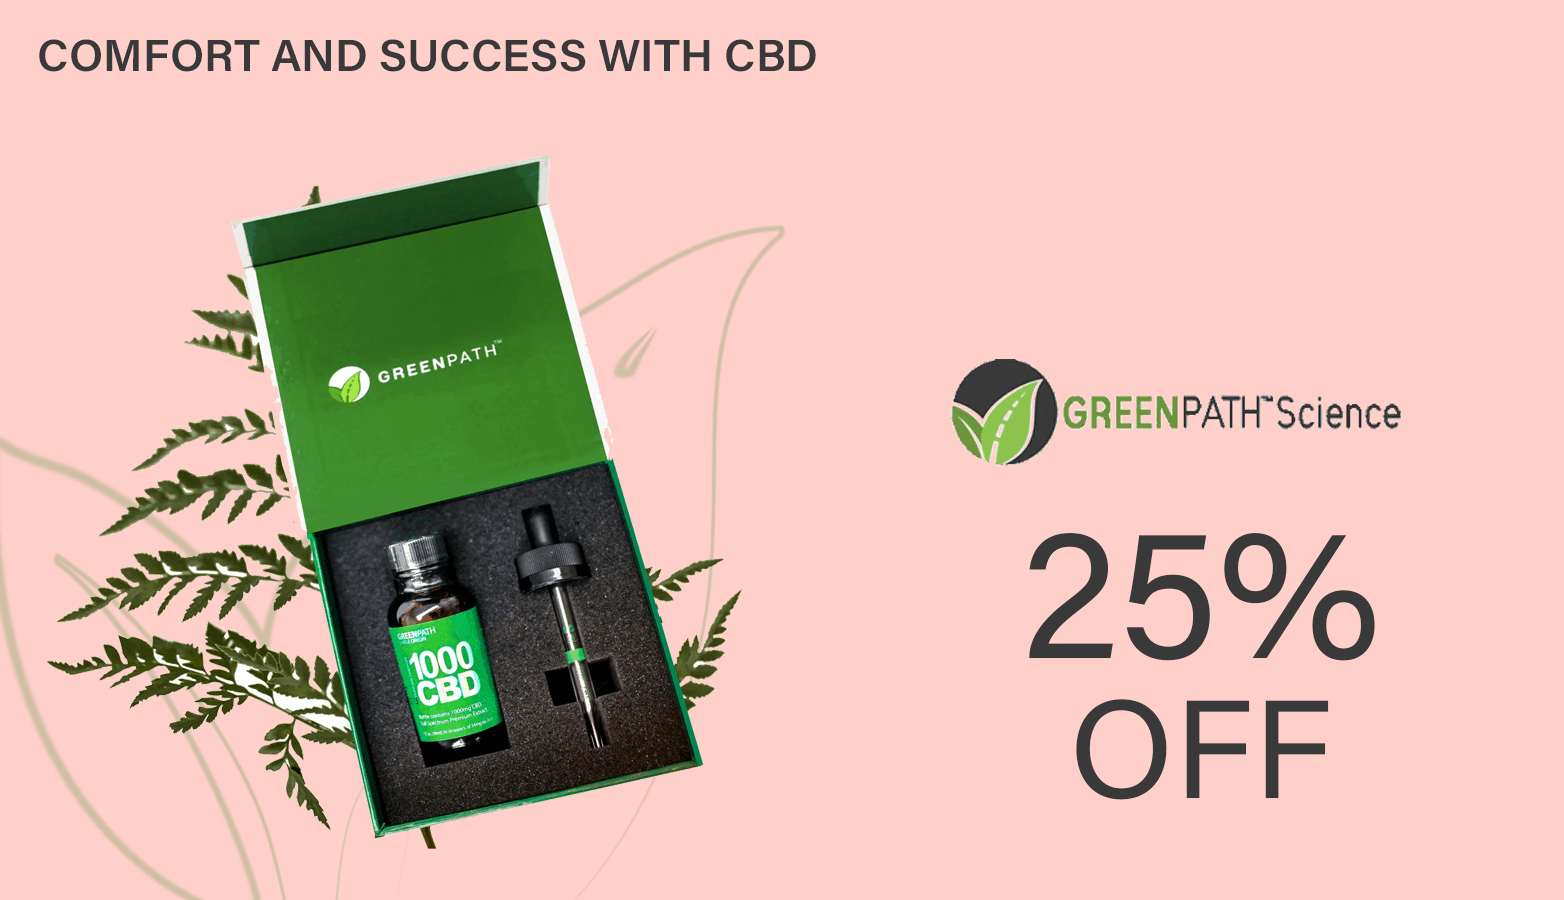 Greenpath Science CBD Discount